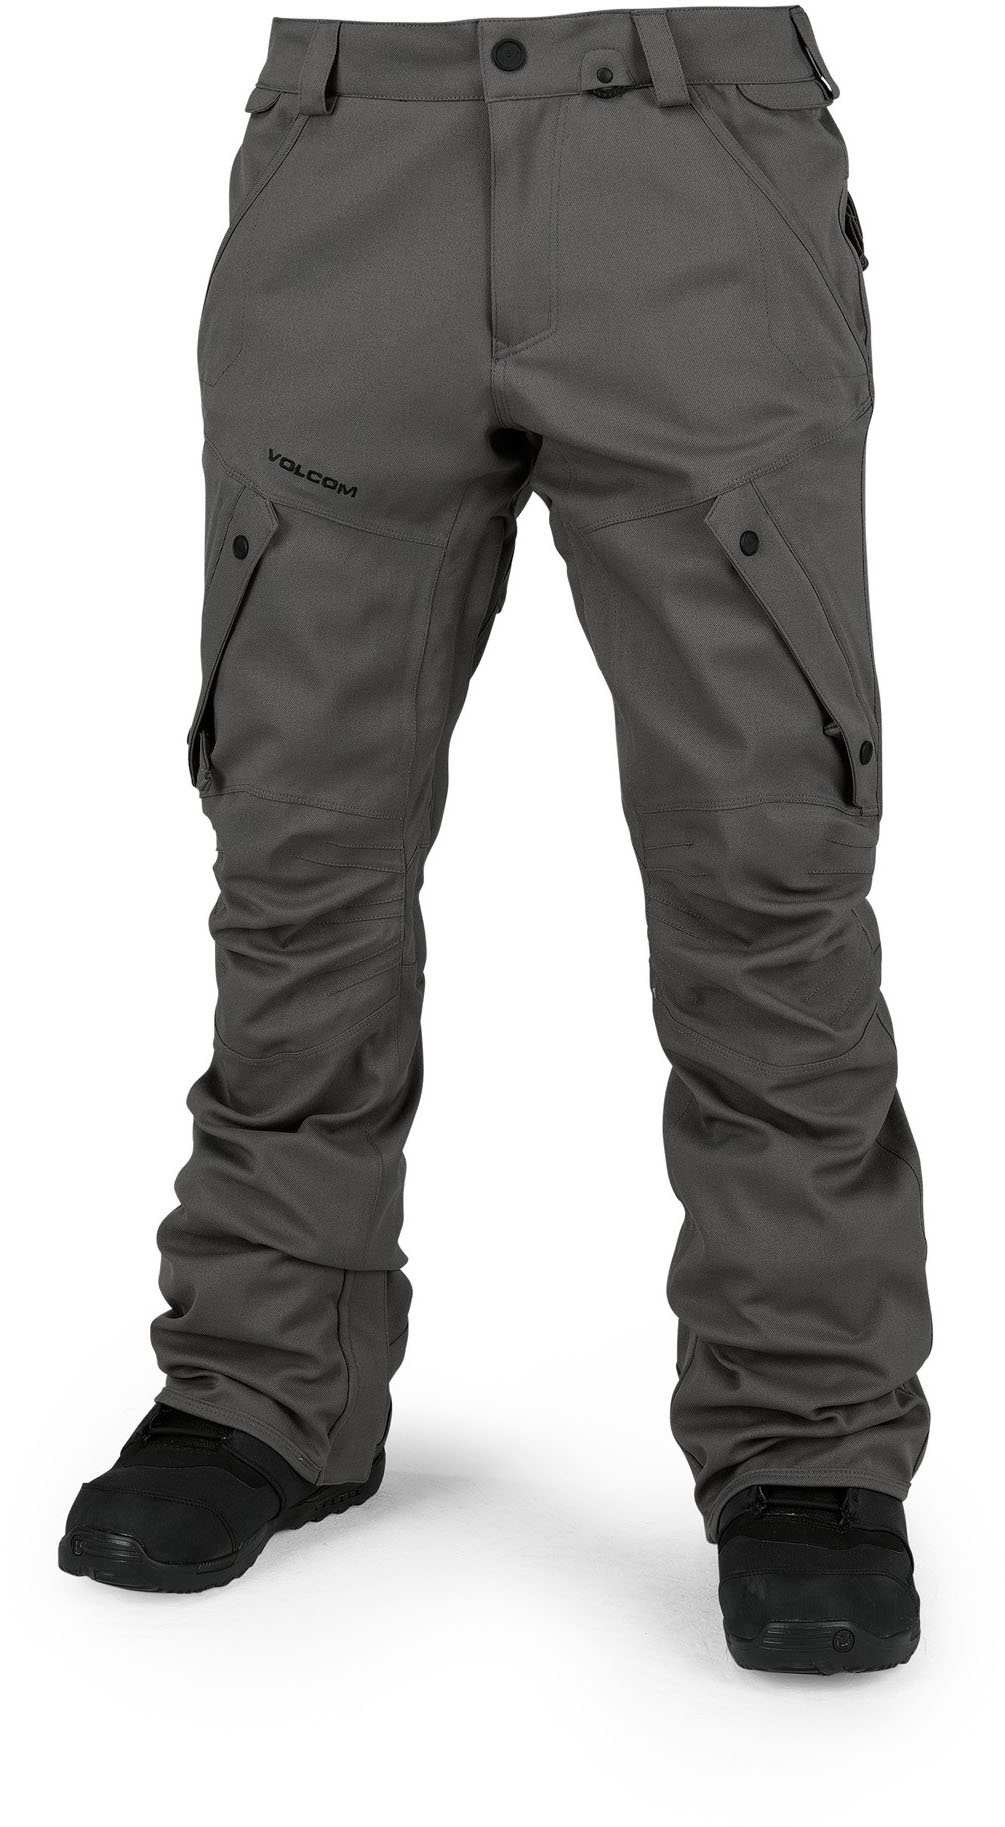 image volcom-articulated-charcoal-jpg